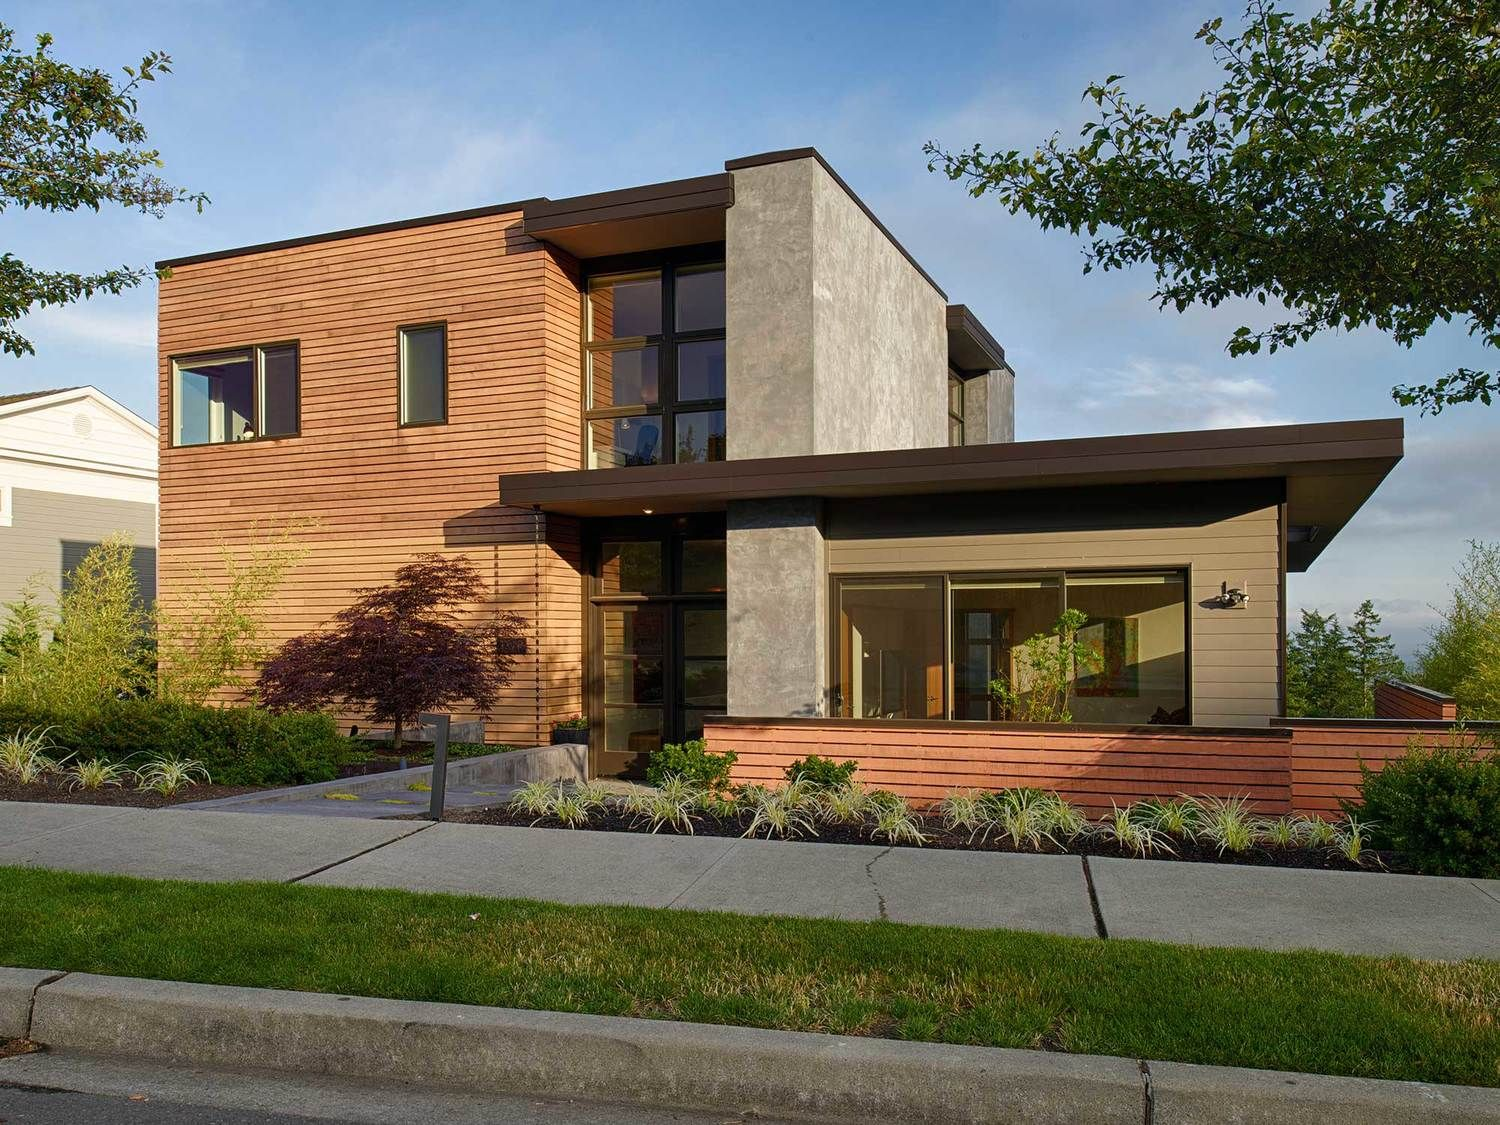 Clap + cedar + grey stucco/concrete